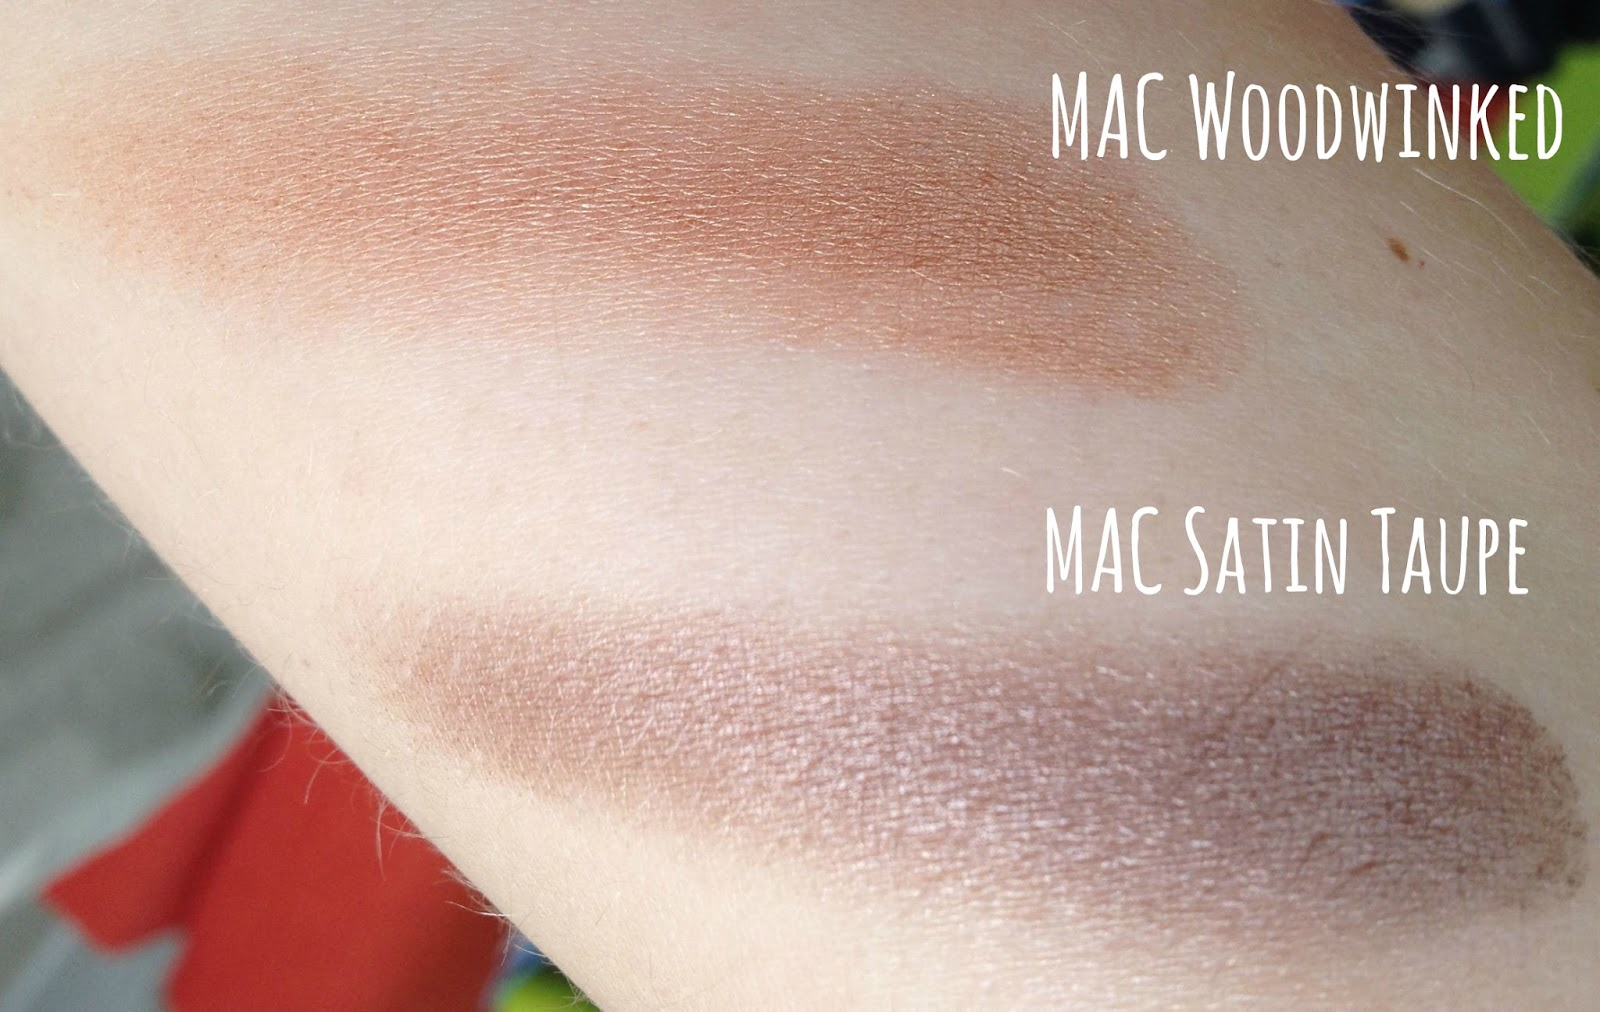 MAC Woodwinked Veluxe Pearl eye shadow and MAC Satin Taupe swatch